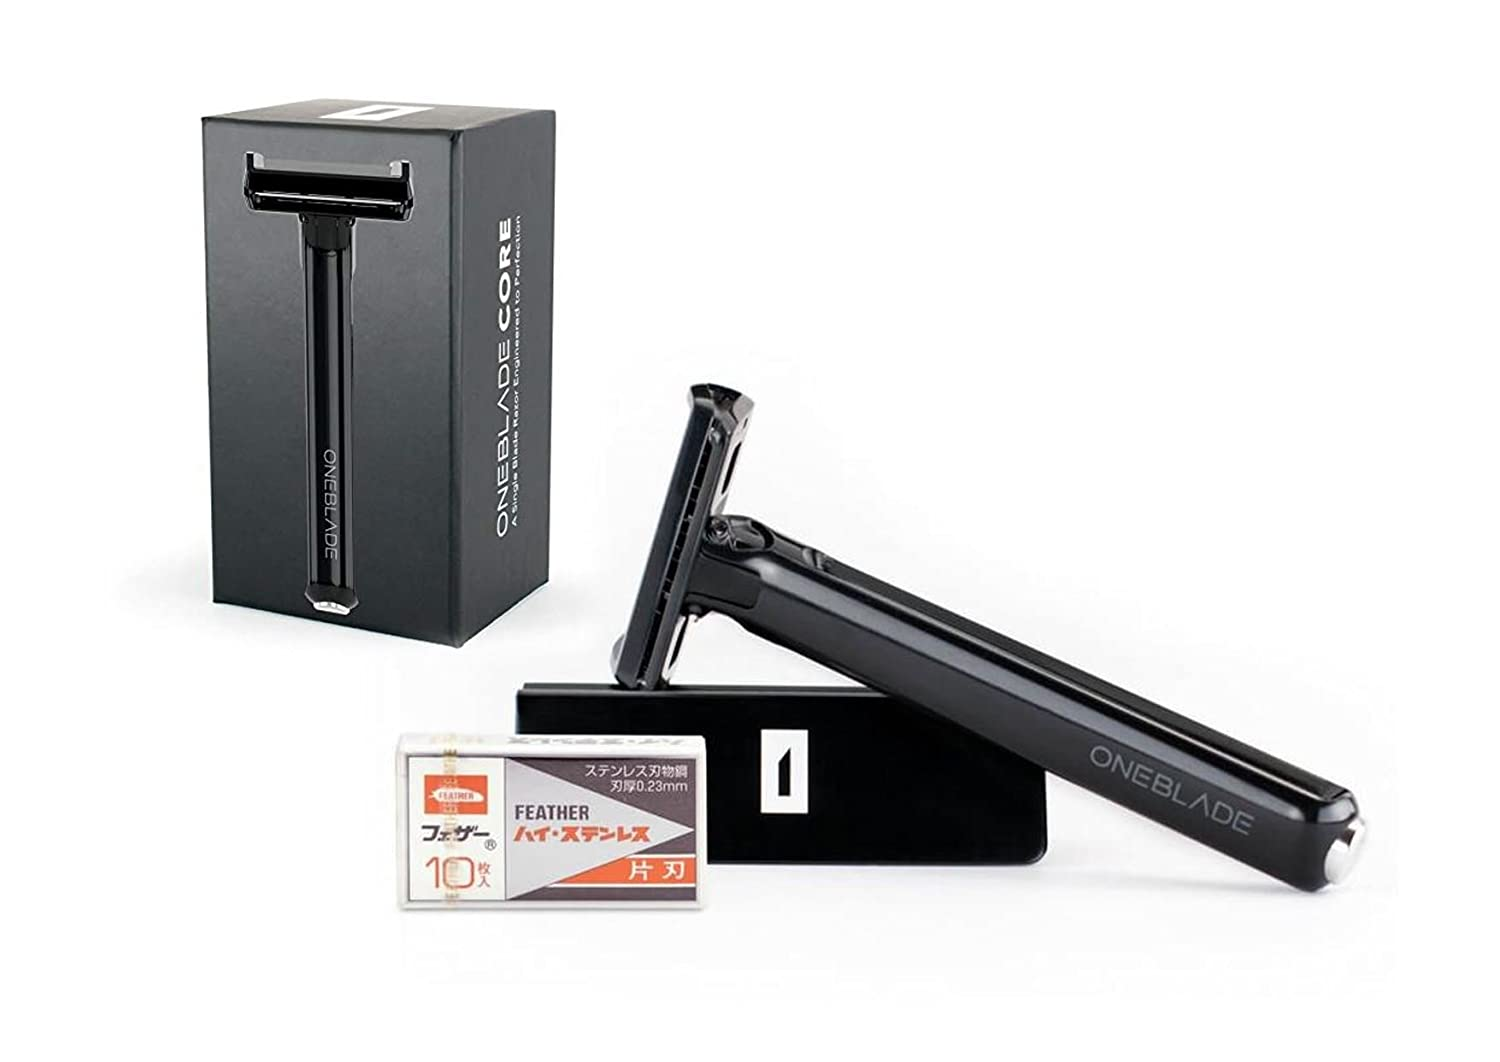 OneBlade CORE Set - Optimal Fixed Pivoting Head Safety Razor, Engineer-grade Tritan Polymer with Razor Display Stand and 10 Feather Hi-Stainless Blades